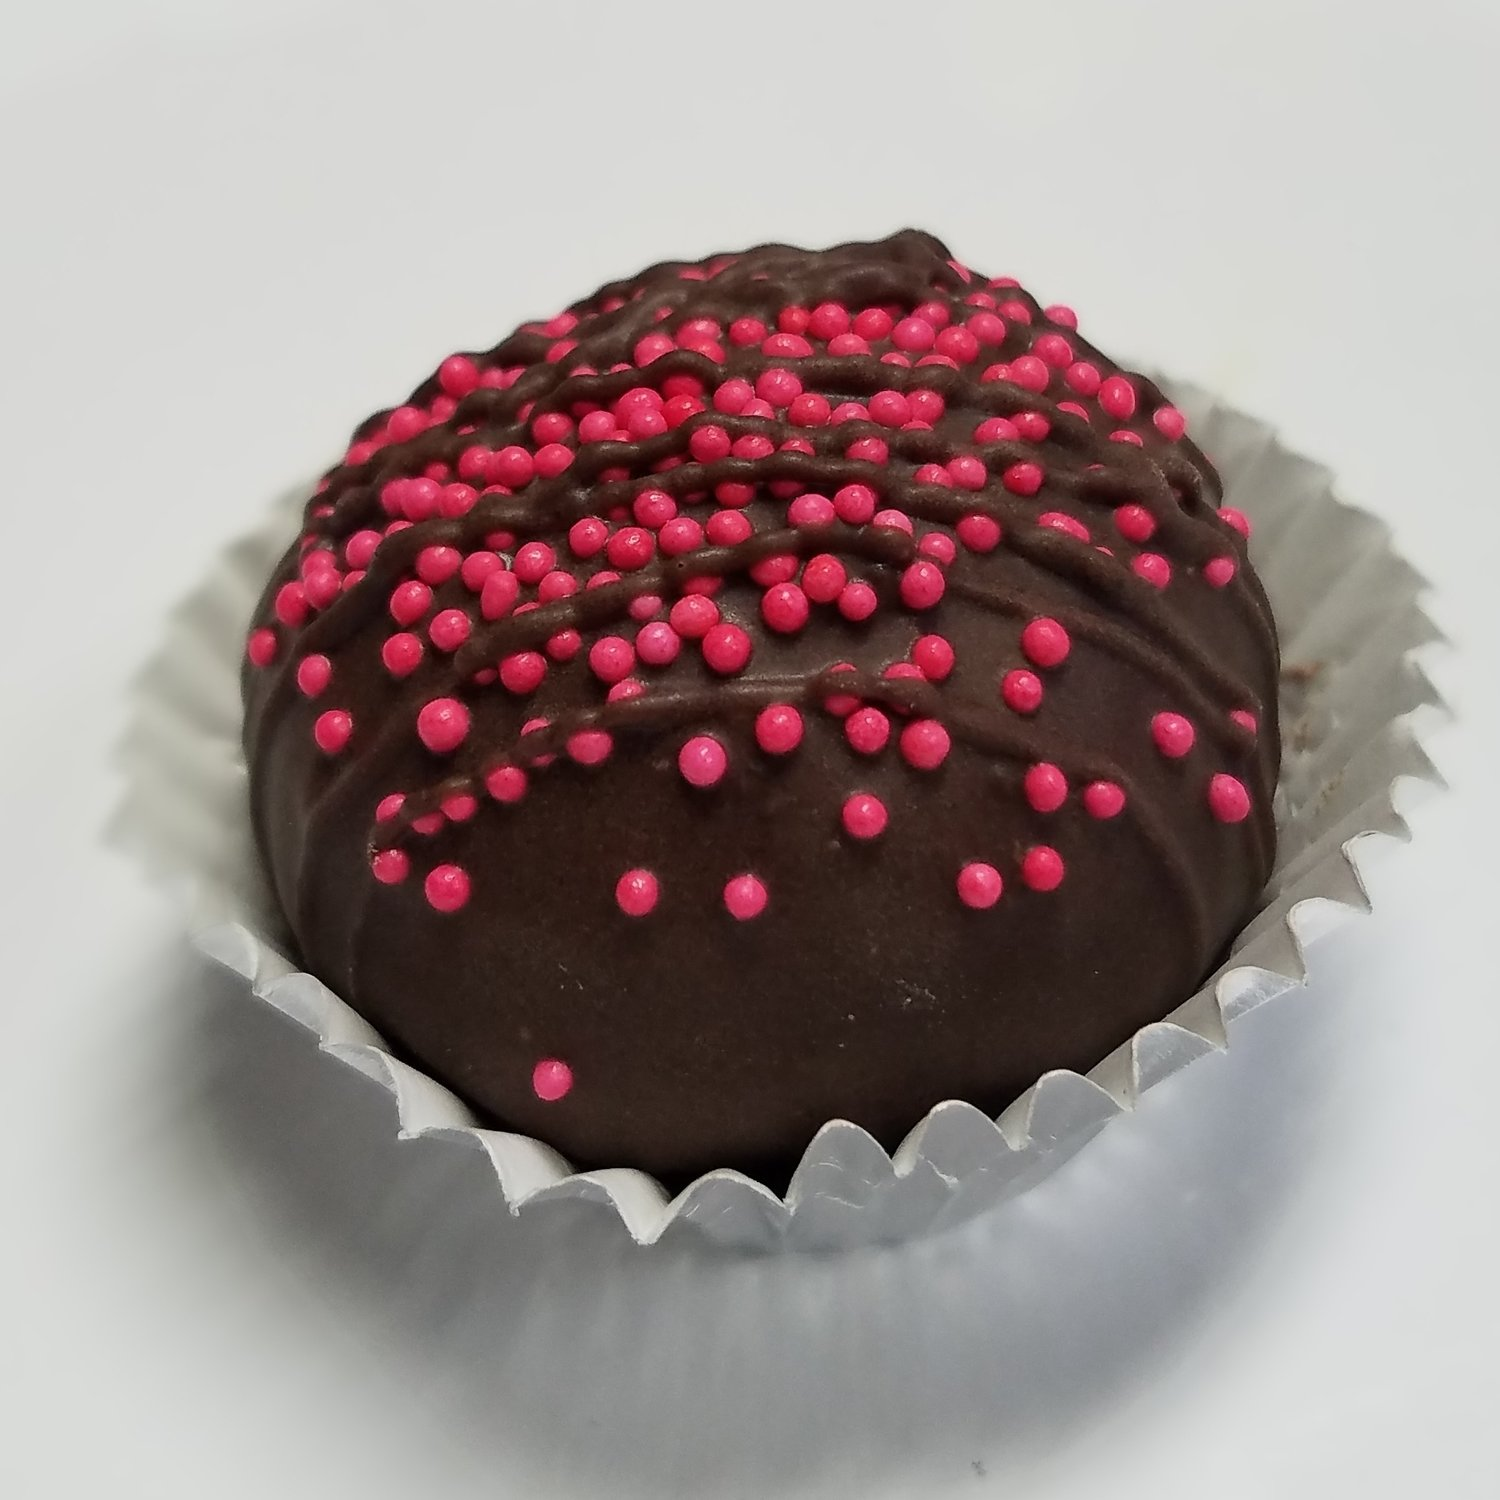 Strawberry Cake Truffle (1 Dozen)